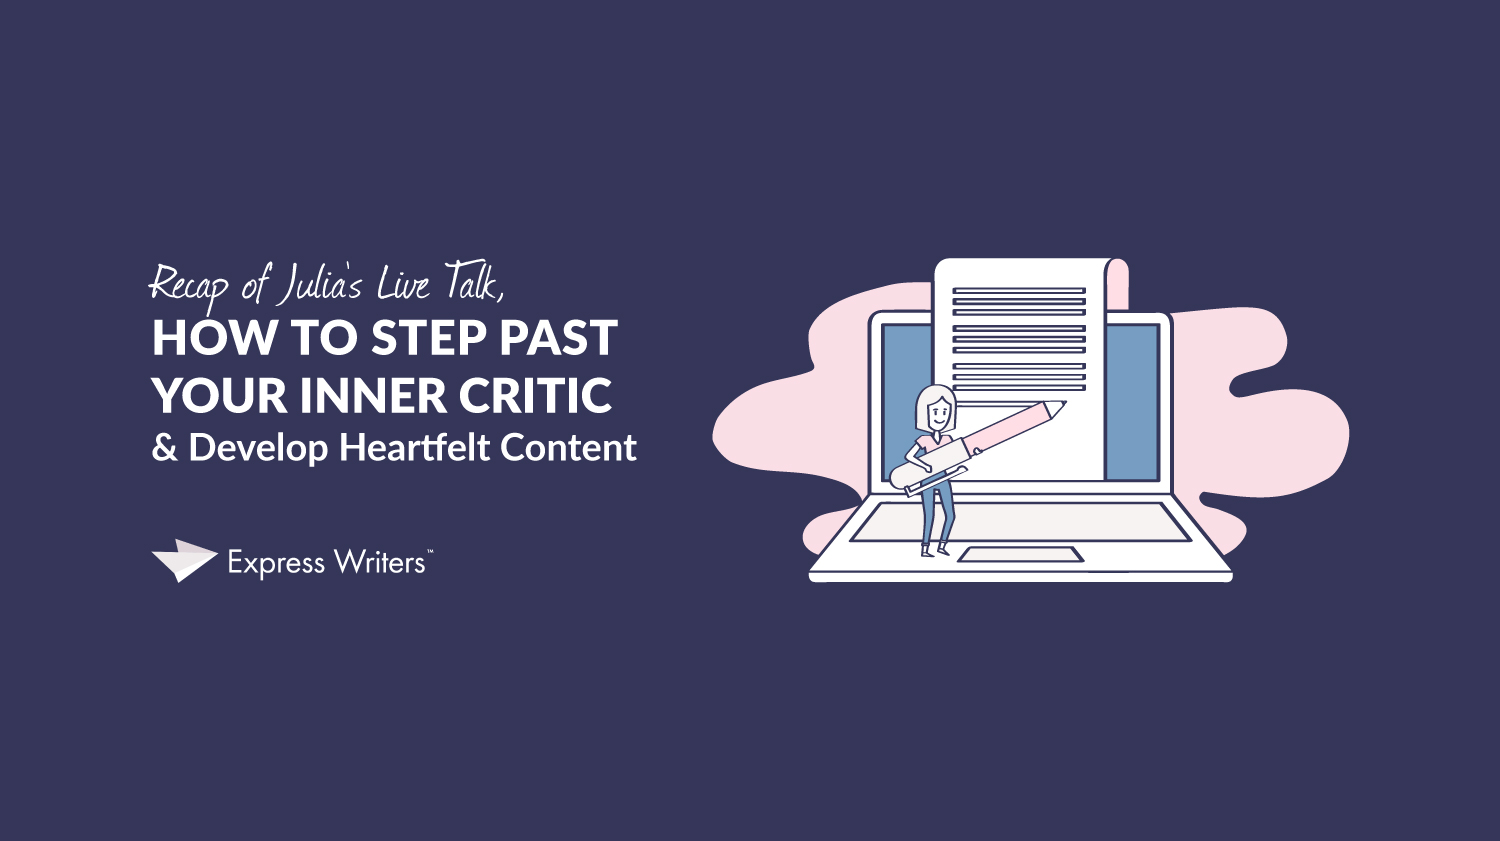 Step past your inner critic and develop heartfelt content